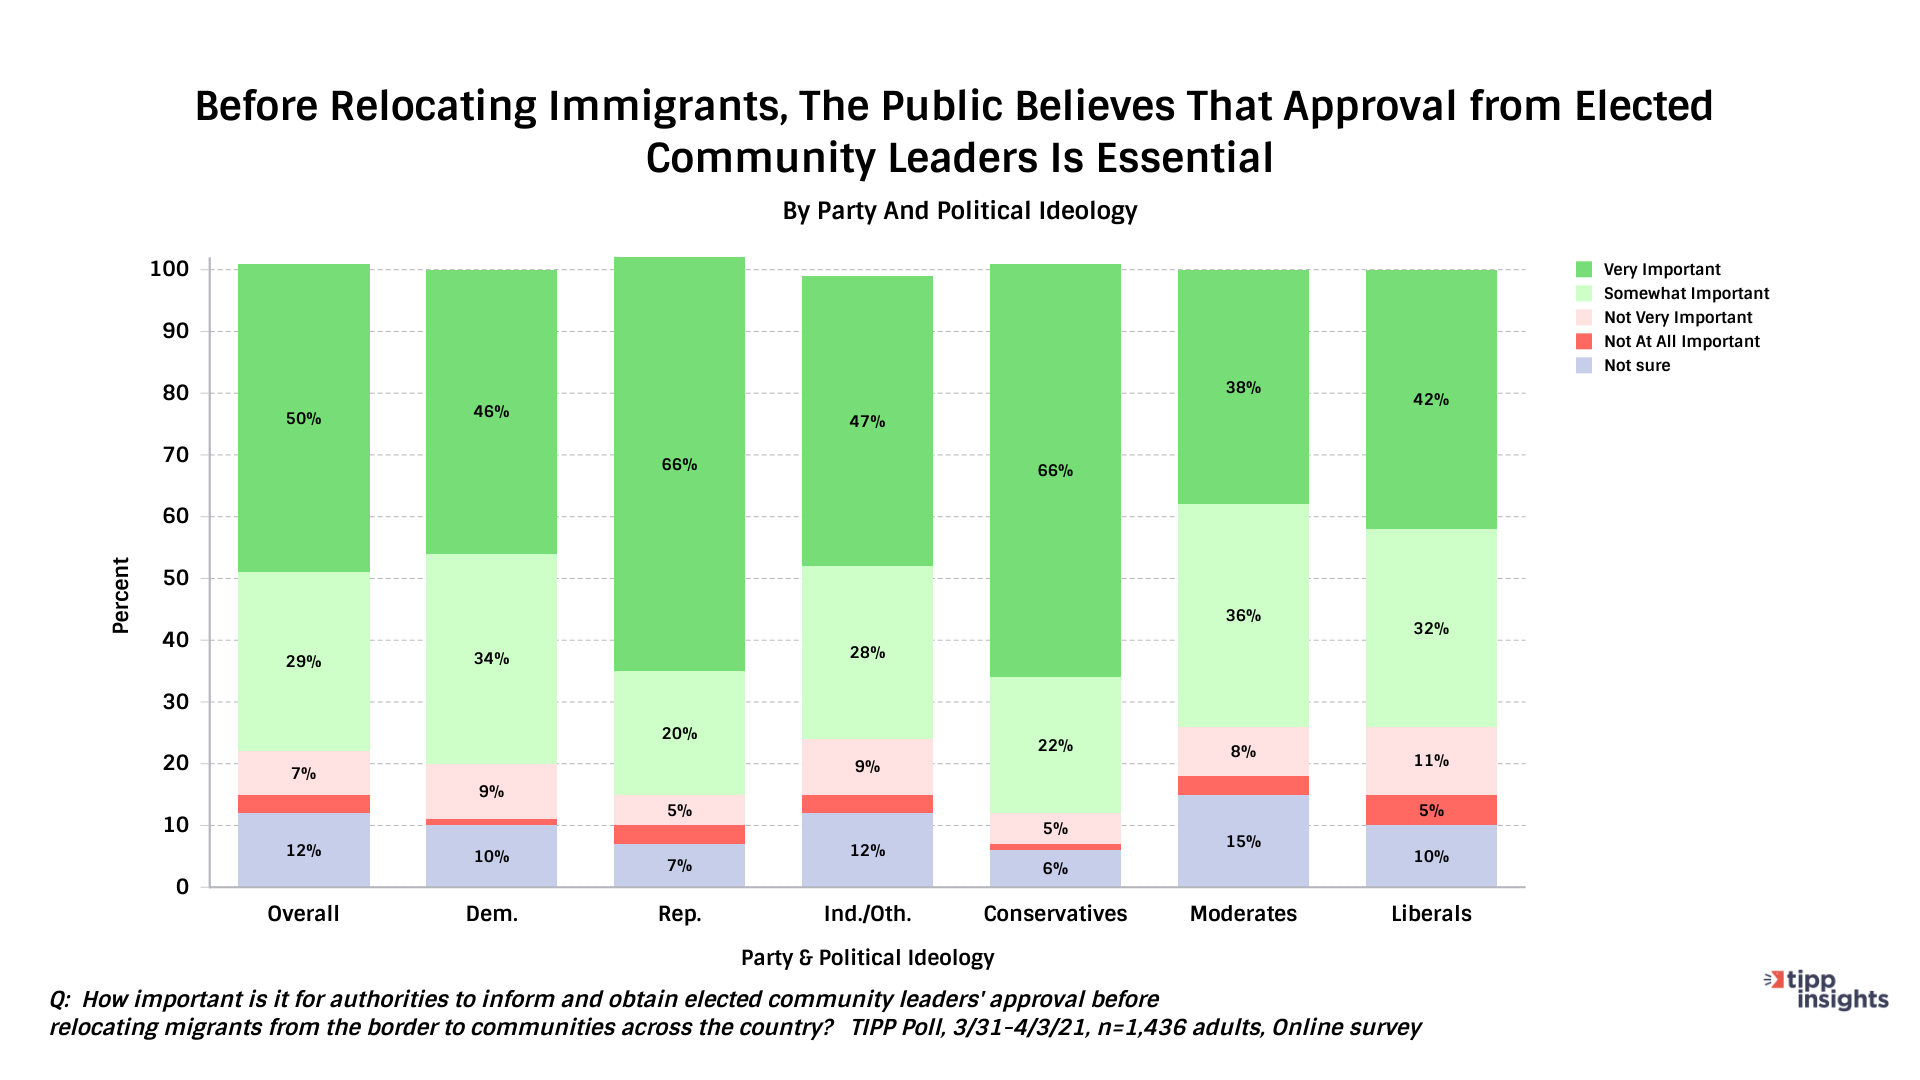 Approval of relocating immigrants - Chart